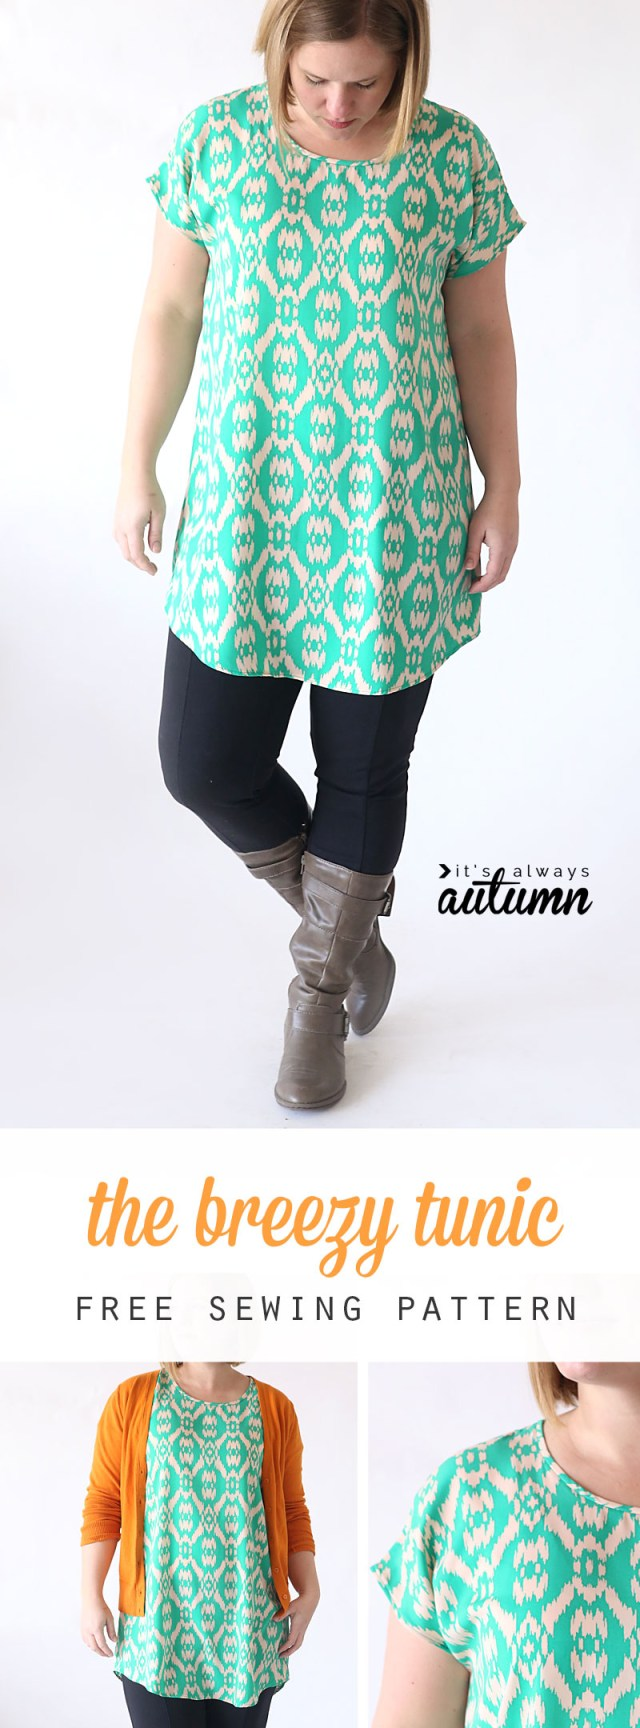 Tunic Sewing Patterns The Breezy Tee Tunic Free Sewing Pattern Its Always Autumn